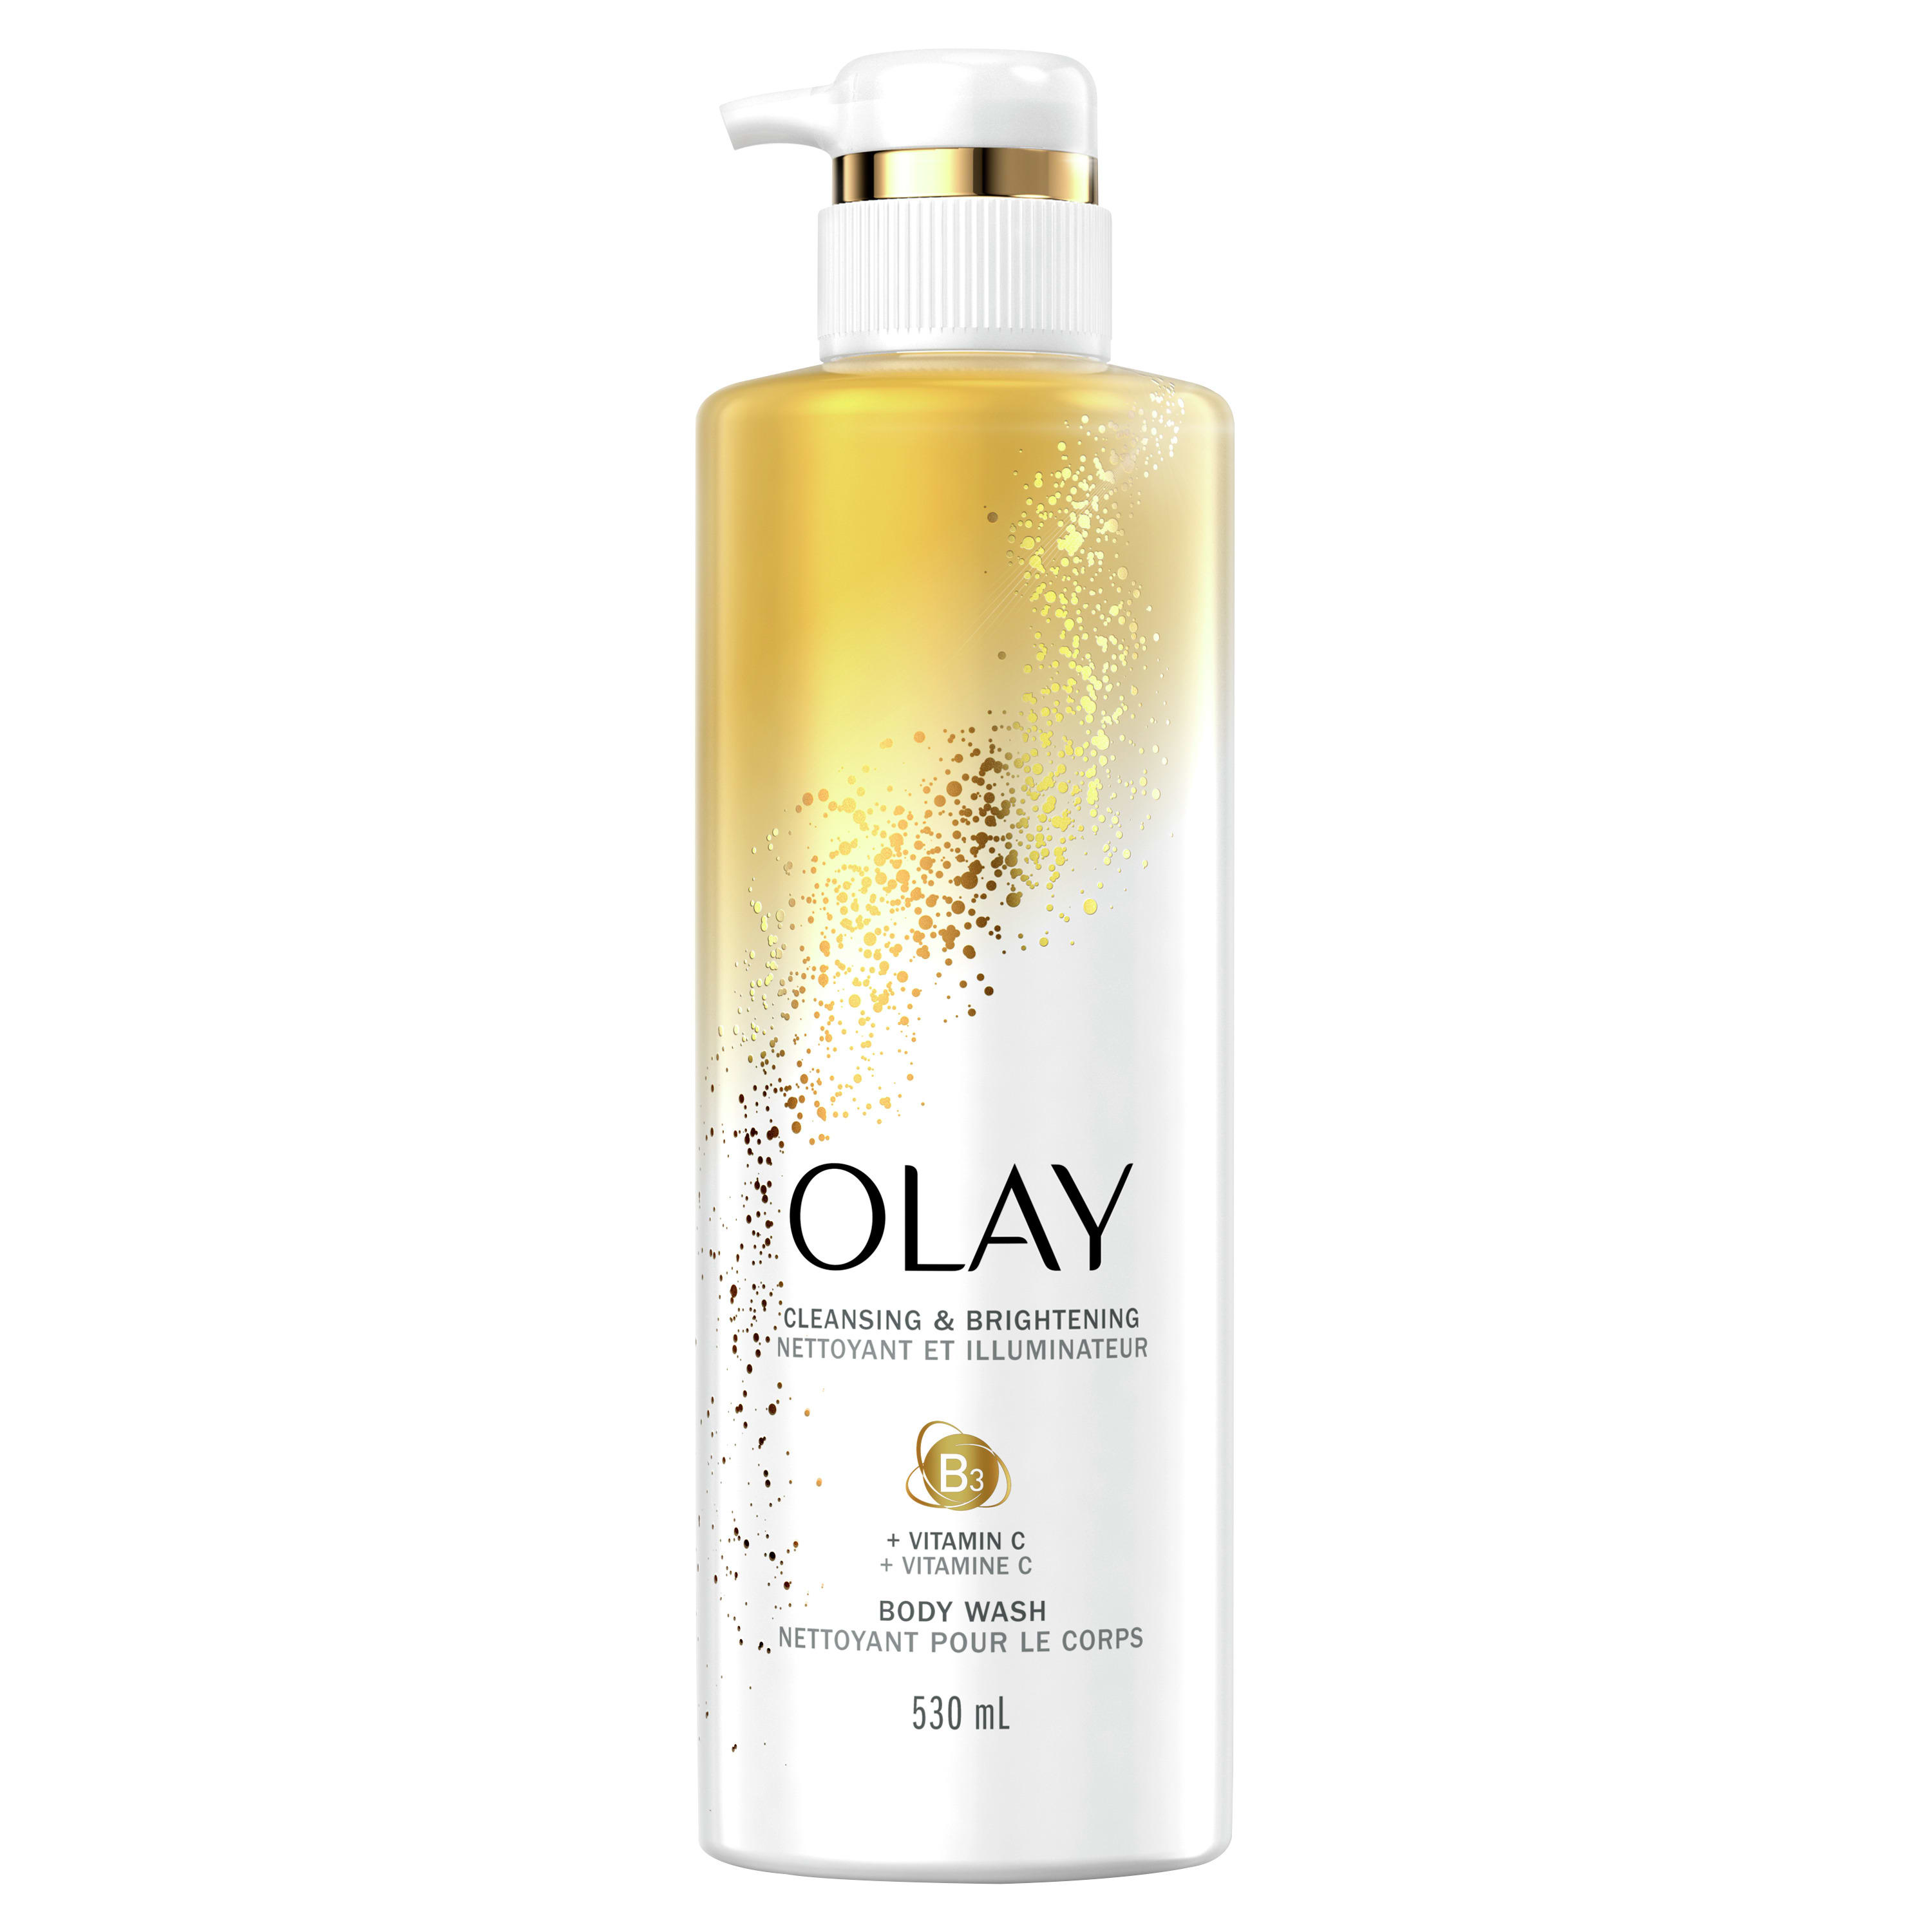 Olay Cleansing & Brightening Body Wash with Vitamin C and Vitamin B3